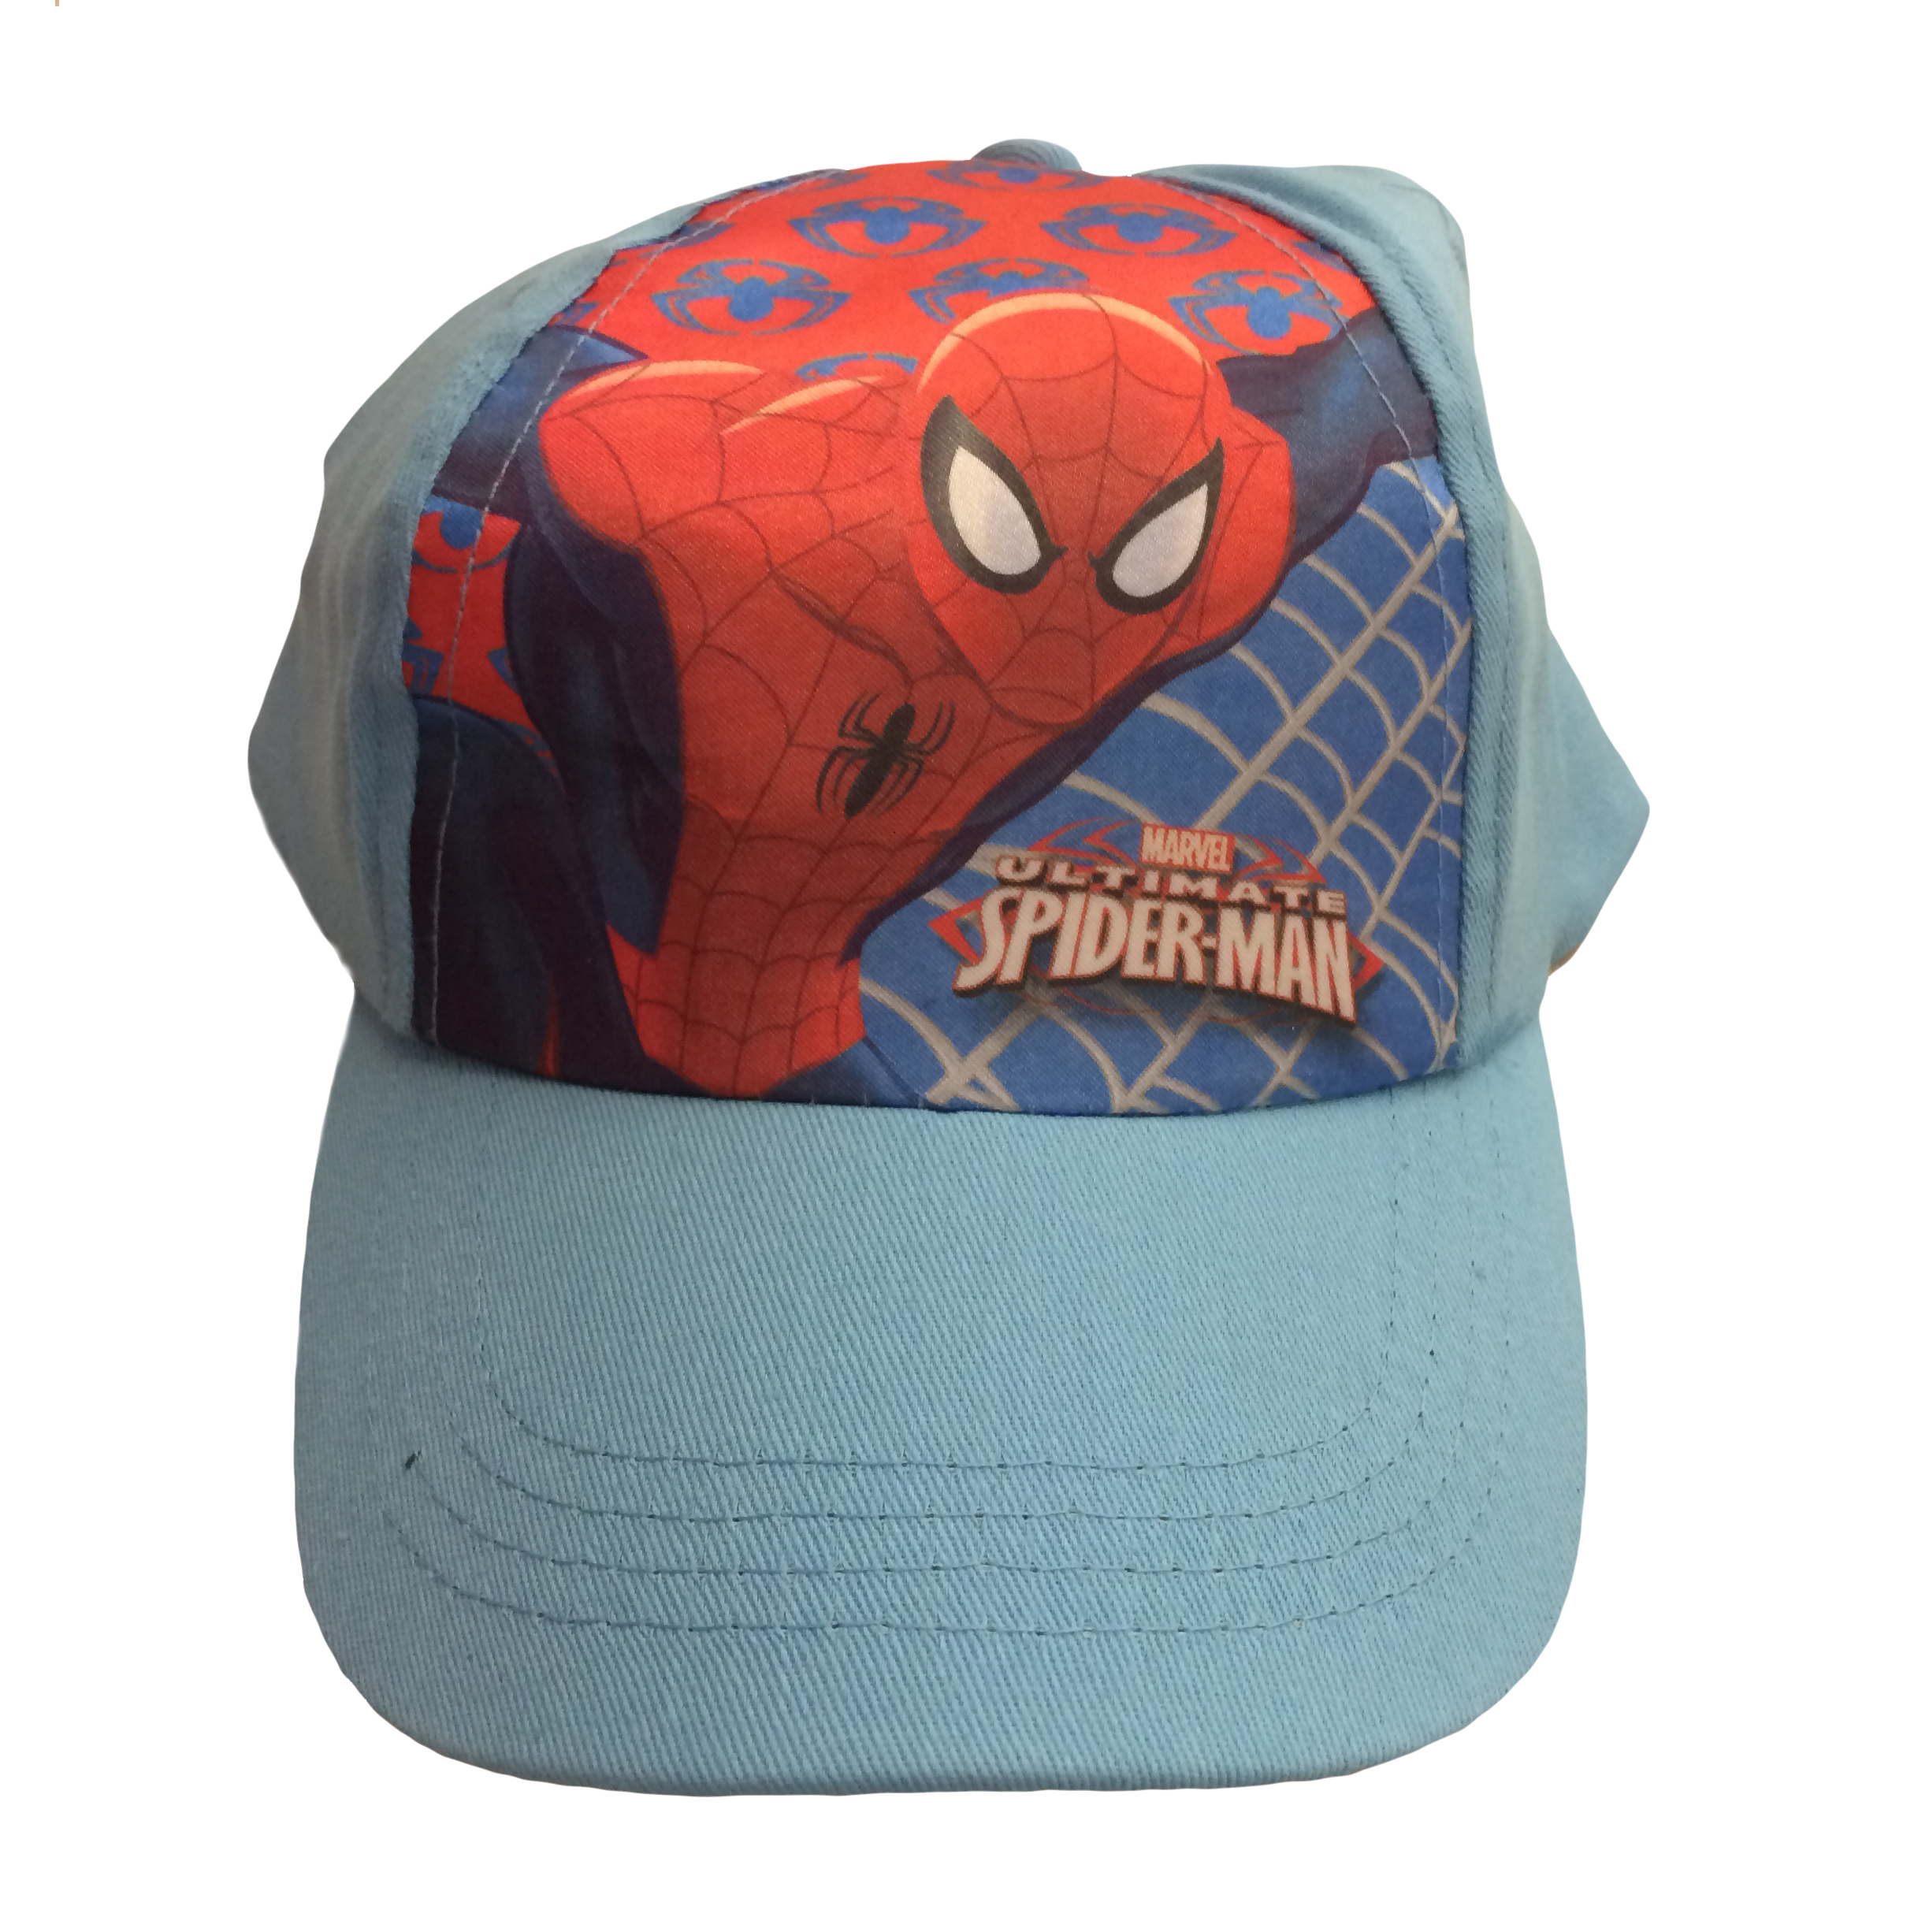 730679e9c20237 Spider-Man Marvel Children's Cap – Get Retro